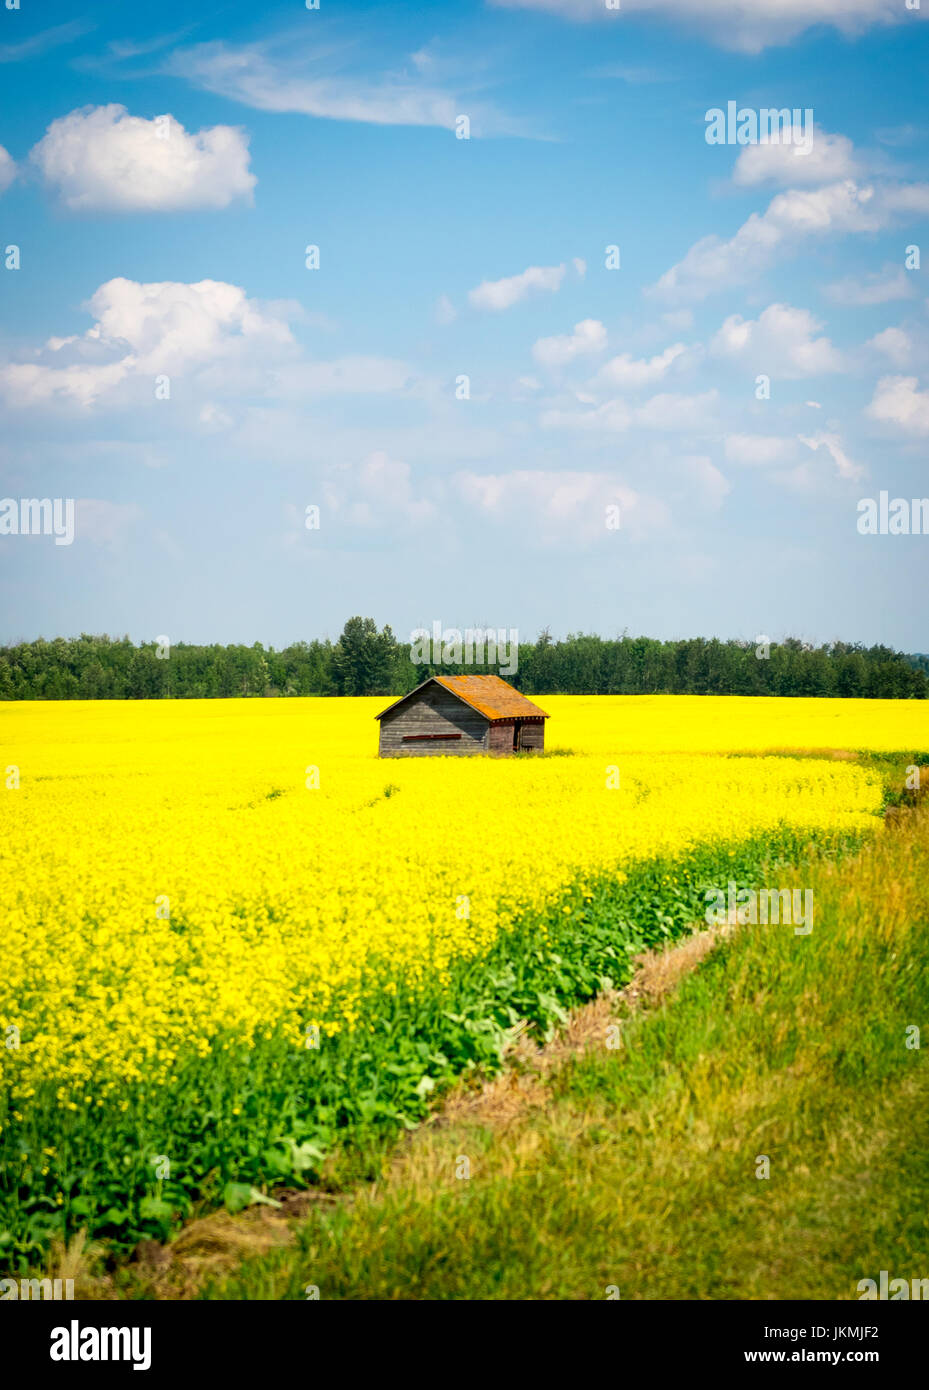 The brilliant yellow flowers of a canola field near Beaumont, Alberta, Canada. Stock Photo